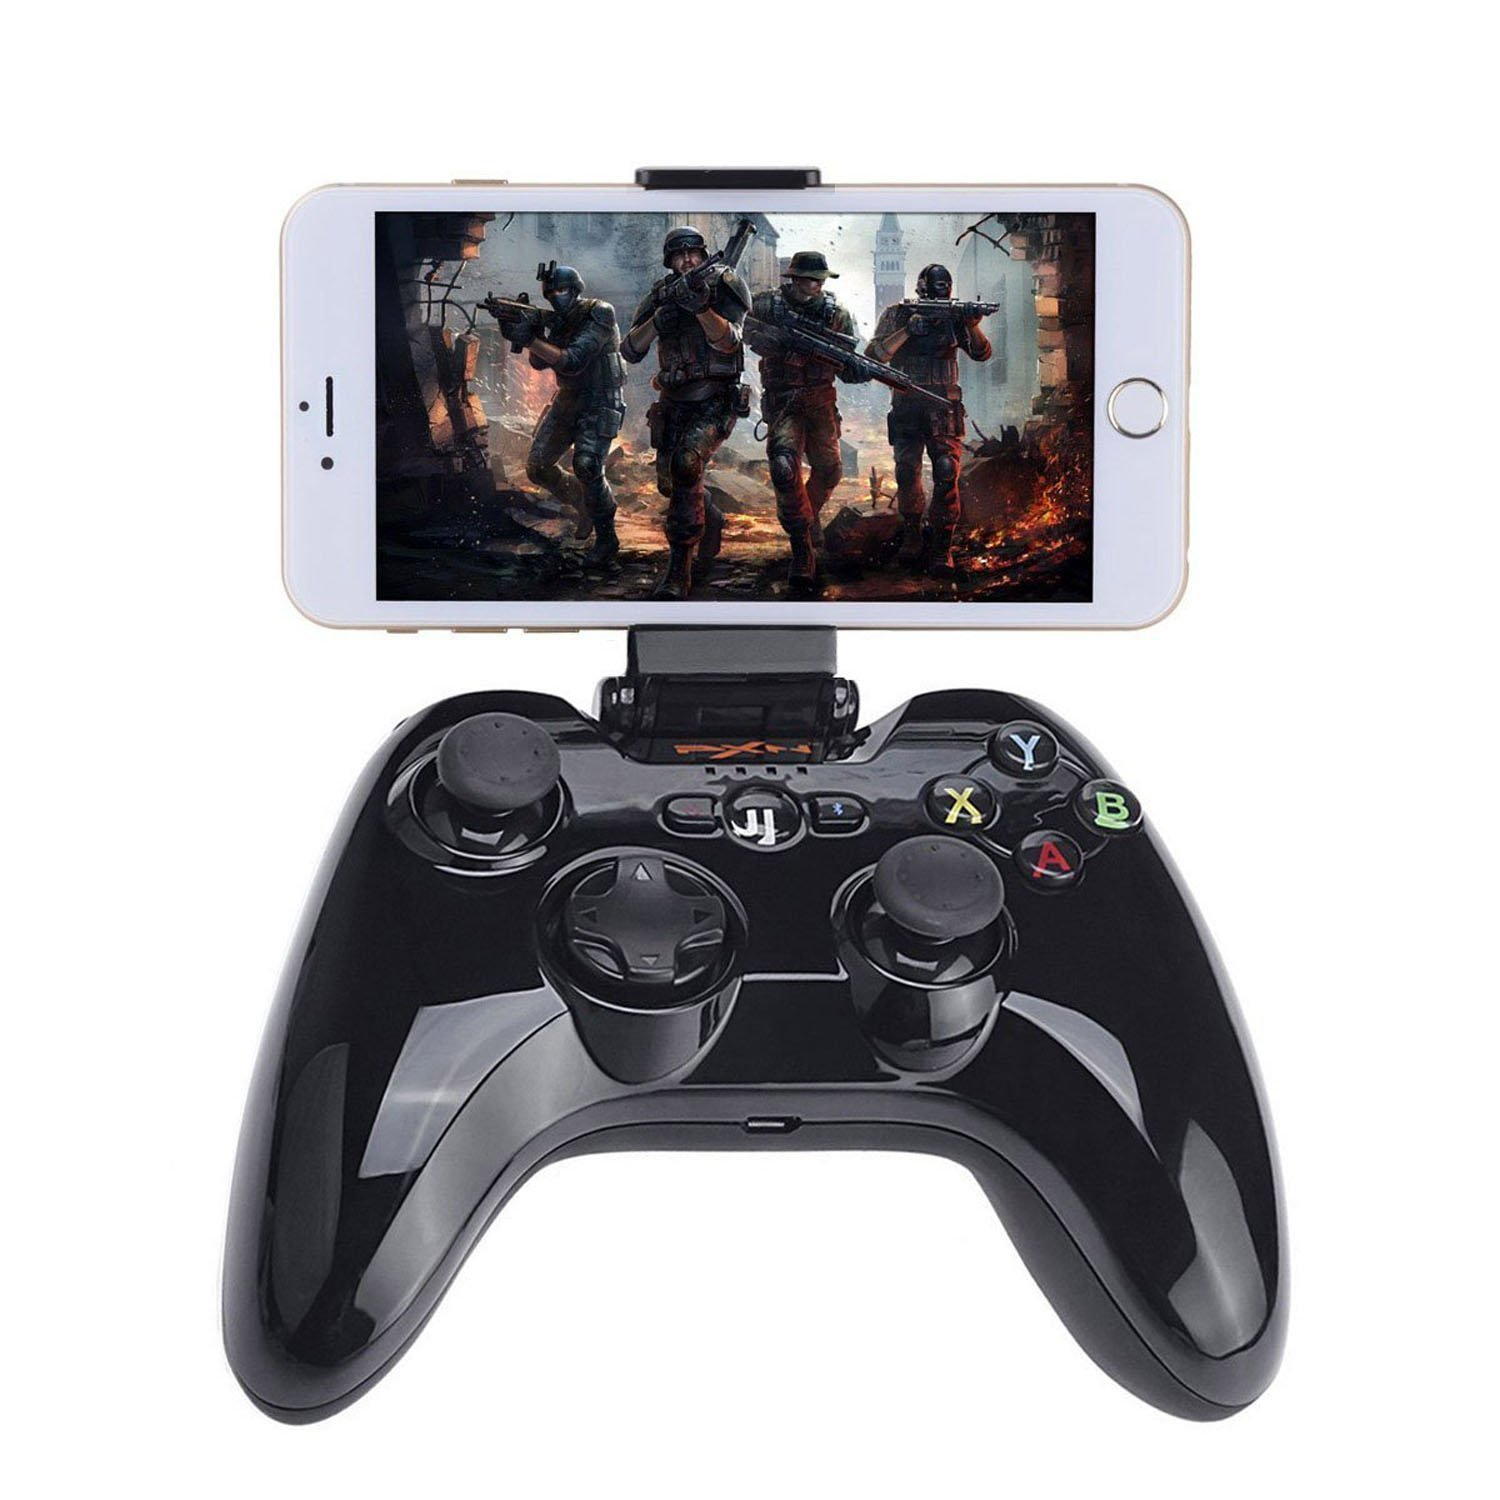 Best Bluetooth Gaming Gamepad Controllers For Android Smartphones Stick Ipega Mobile Controller Pg 9021 Megadream Ios Games Mfi Joystick Compatible With Apple Iphone Xs Xr X 8 8plus 7 7plus 6s 6